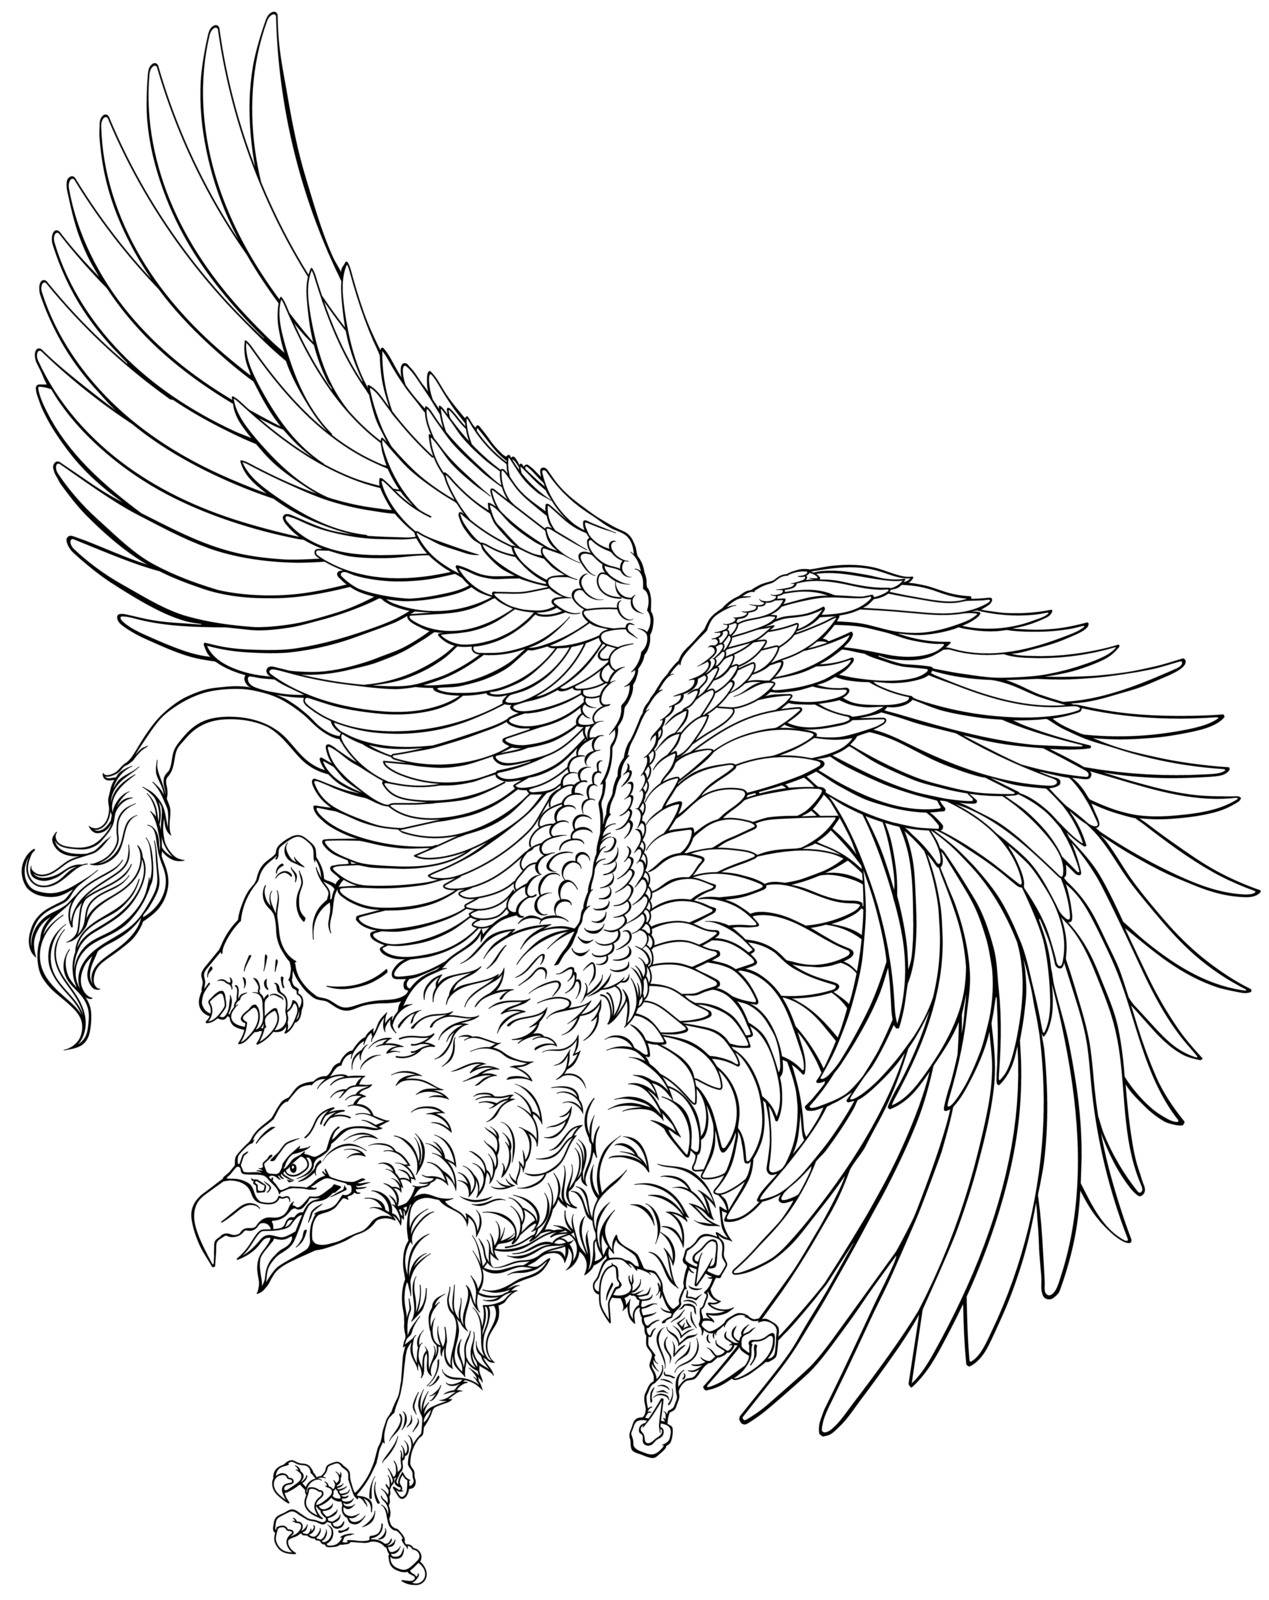 Flying Griffin, griffon, or gryphon. A mythical beast having the body of a lion and the wings and head of an eagle. Black and white outline vector illustration